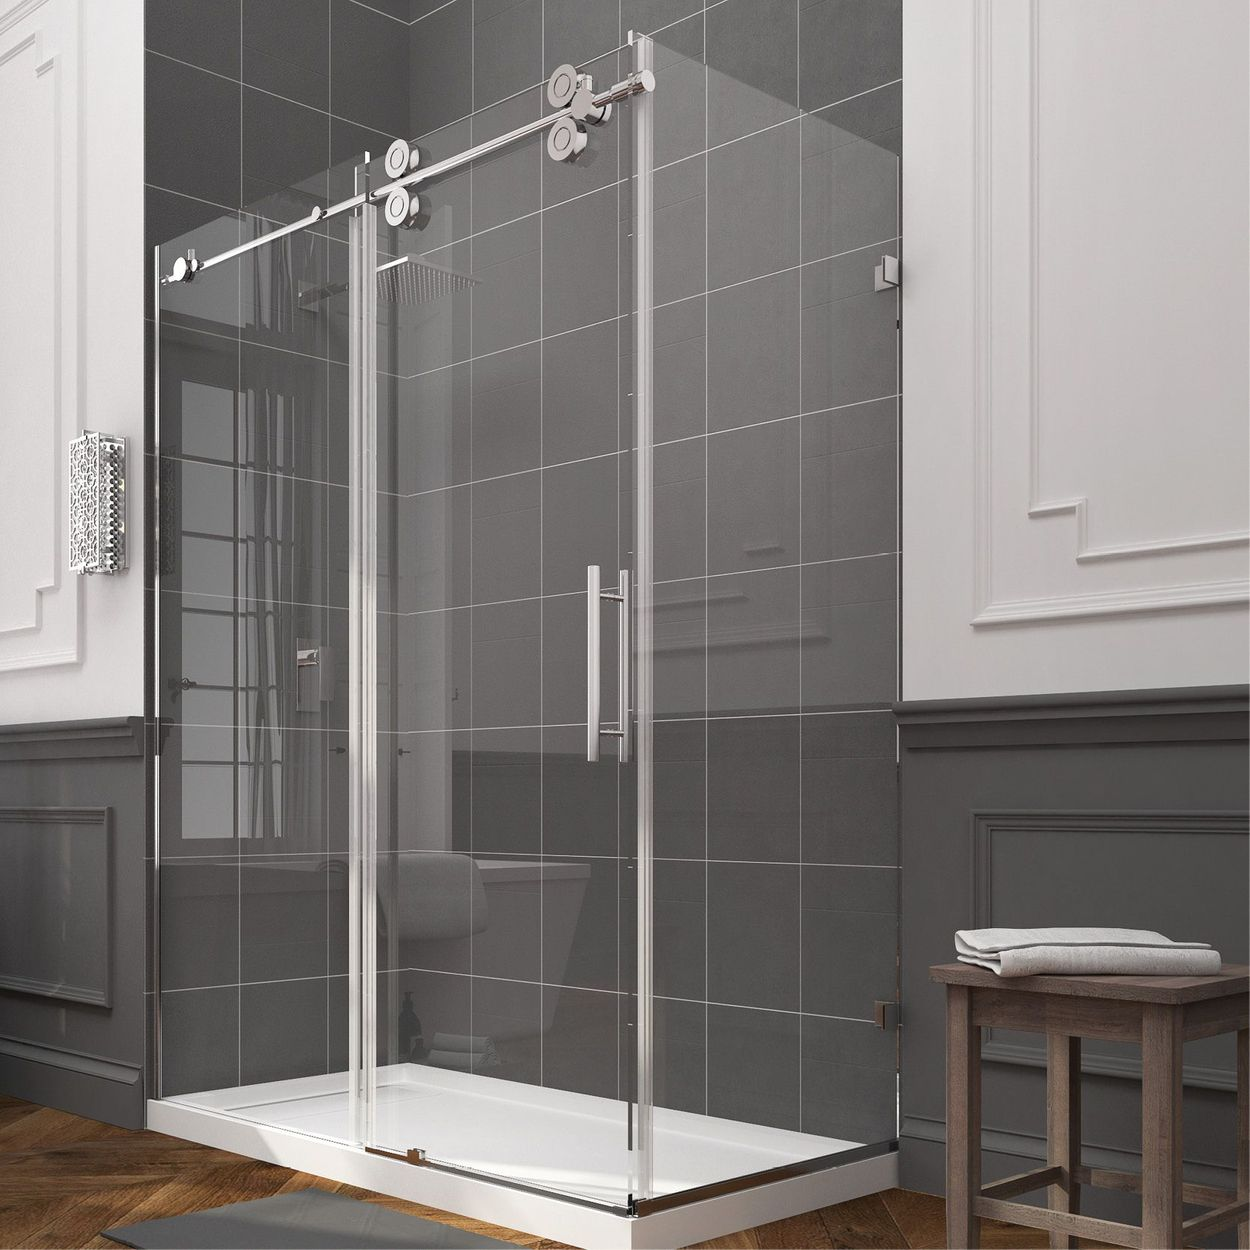 Ove Decors Sydney 78 75 In H X 30 25 In W Clear Shower Glass